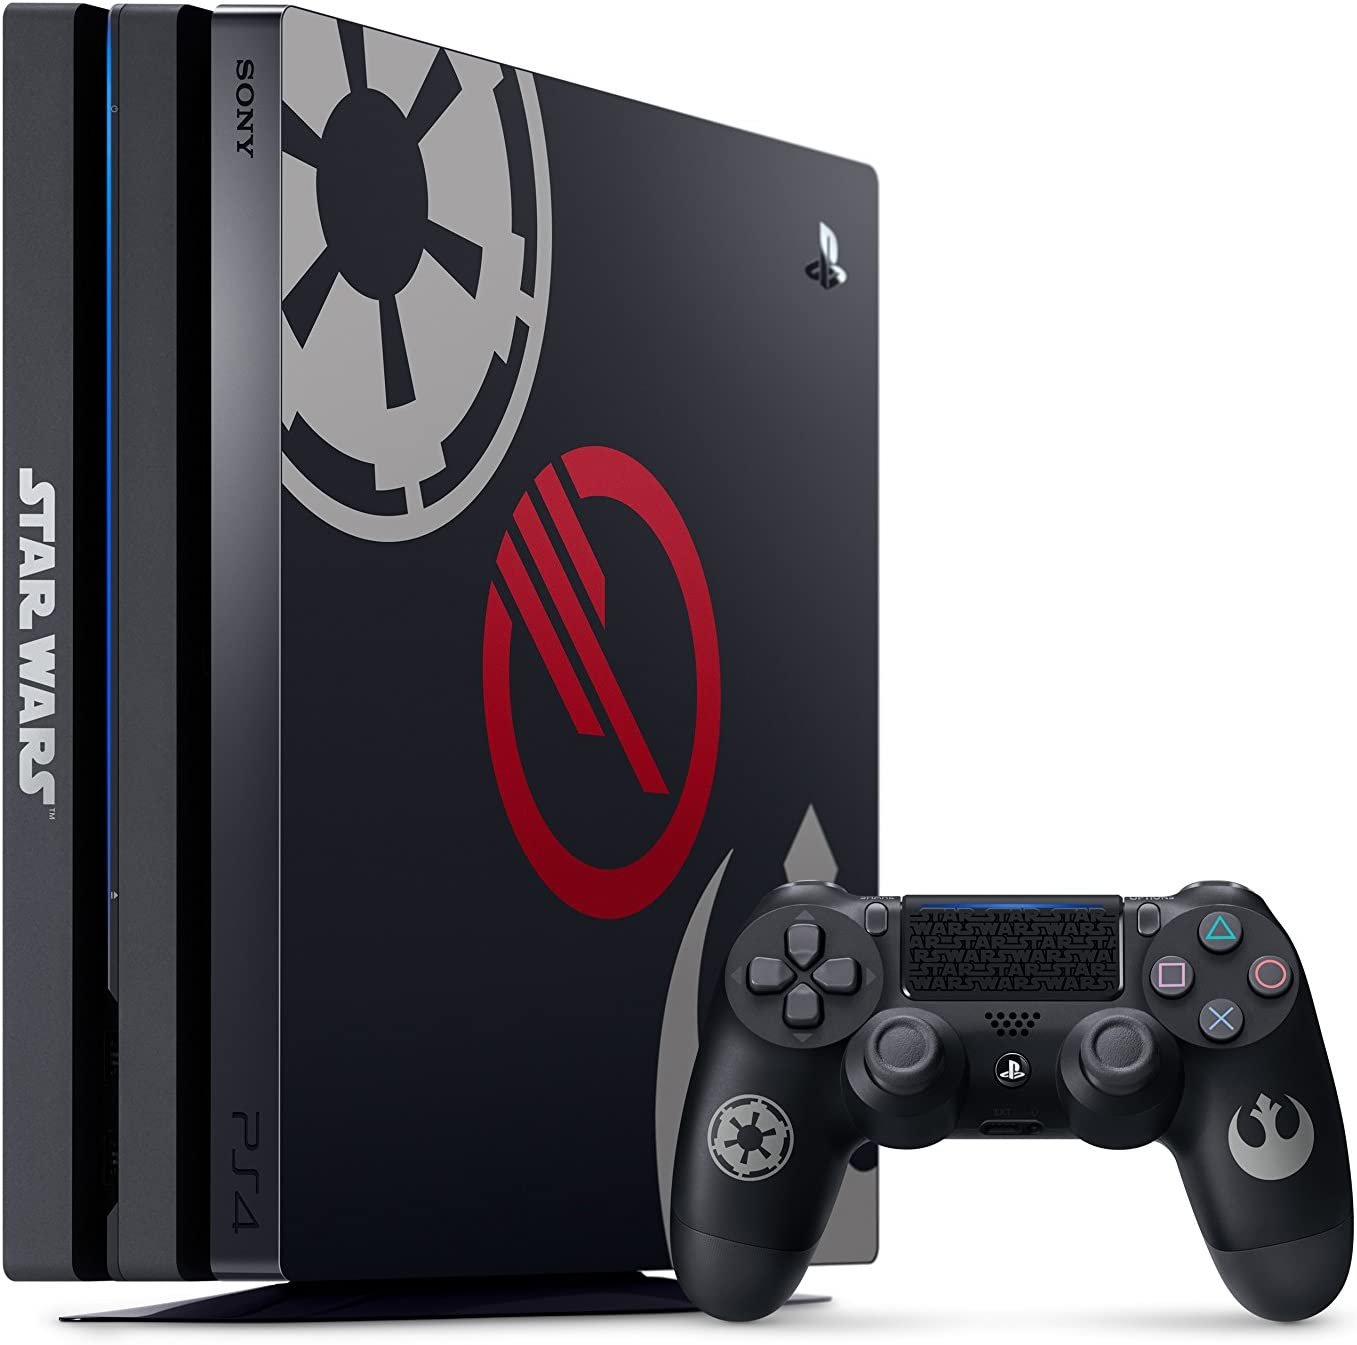 pack ps4 noel 2018 belgique Amazon.com: PlayStation 4 Pro 1TB Limited Edition Console   Star  pack ps4 noel 2018 belgique